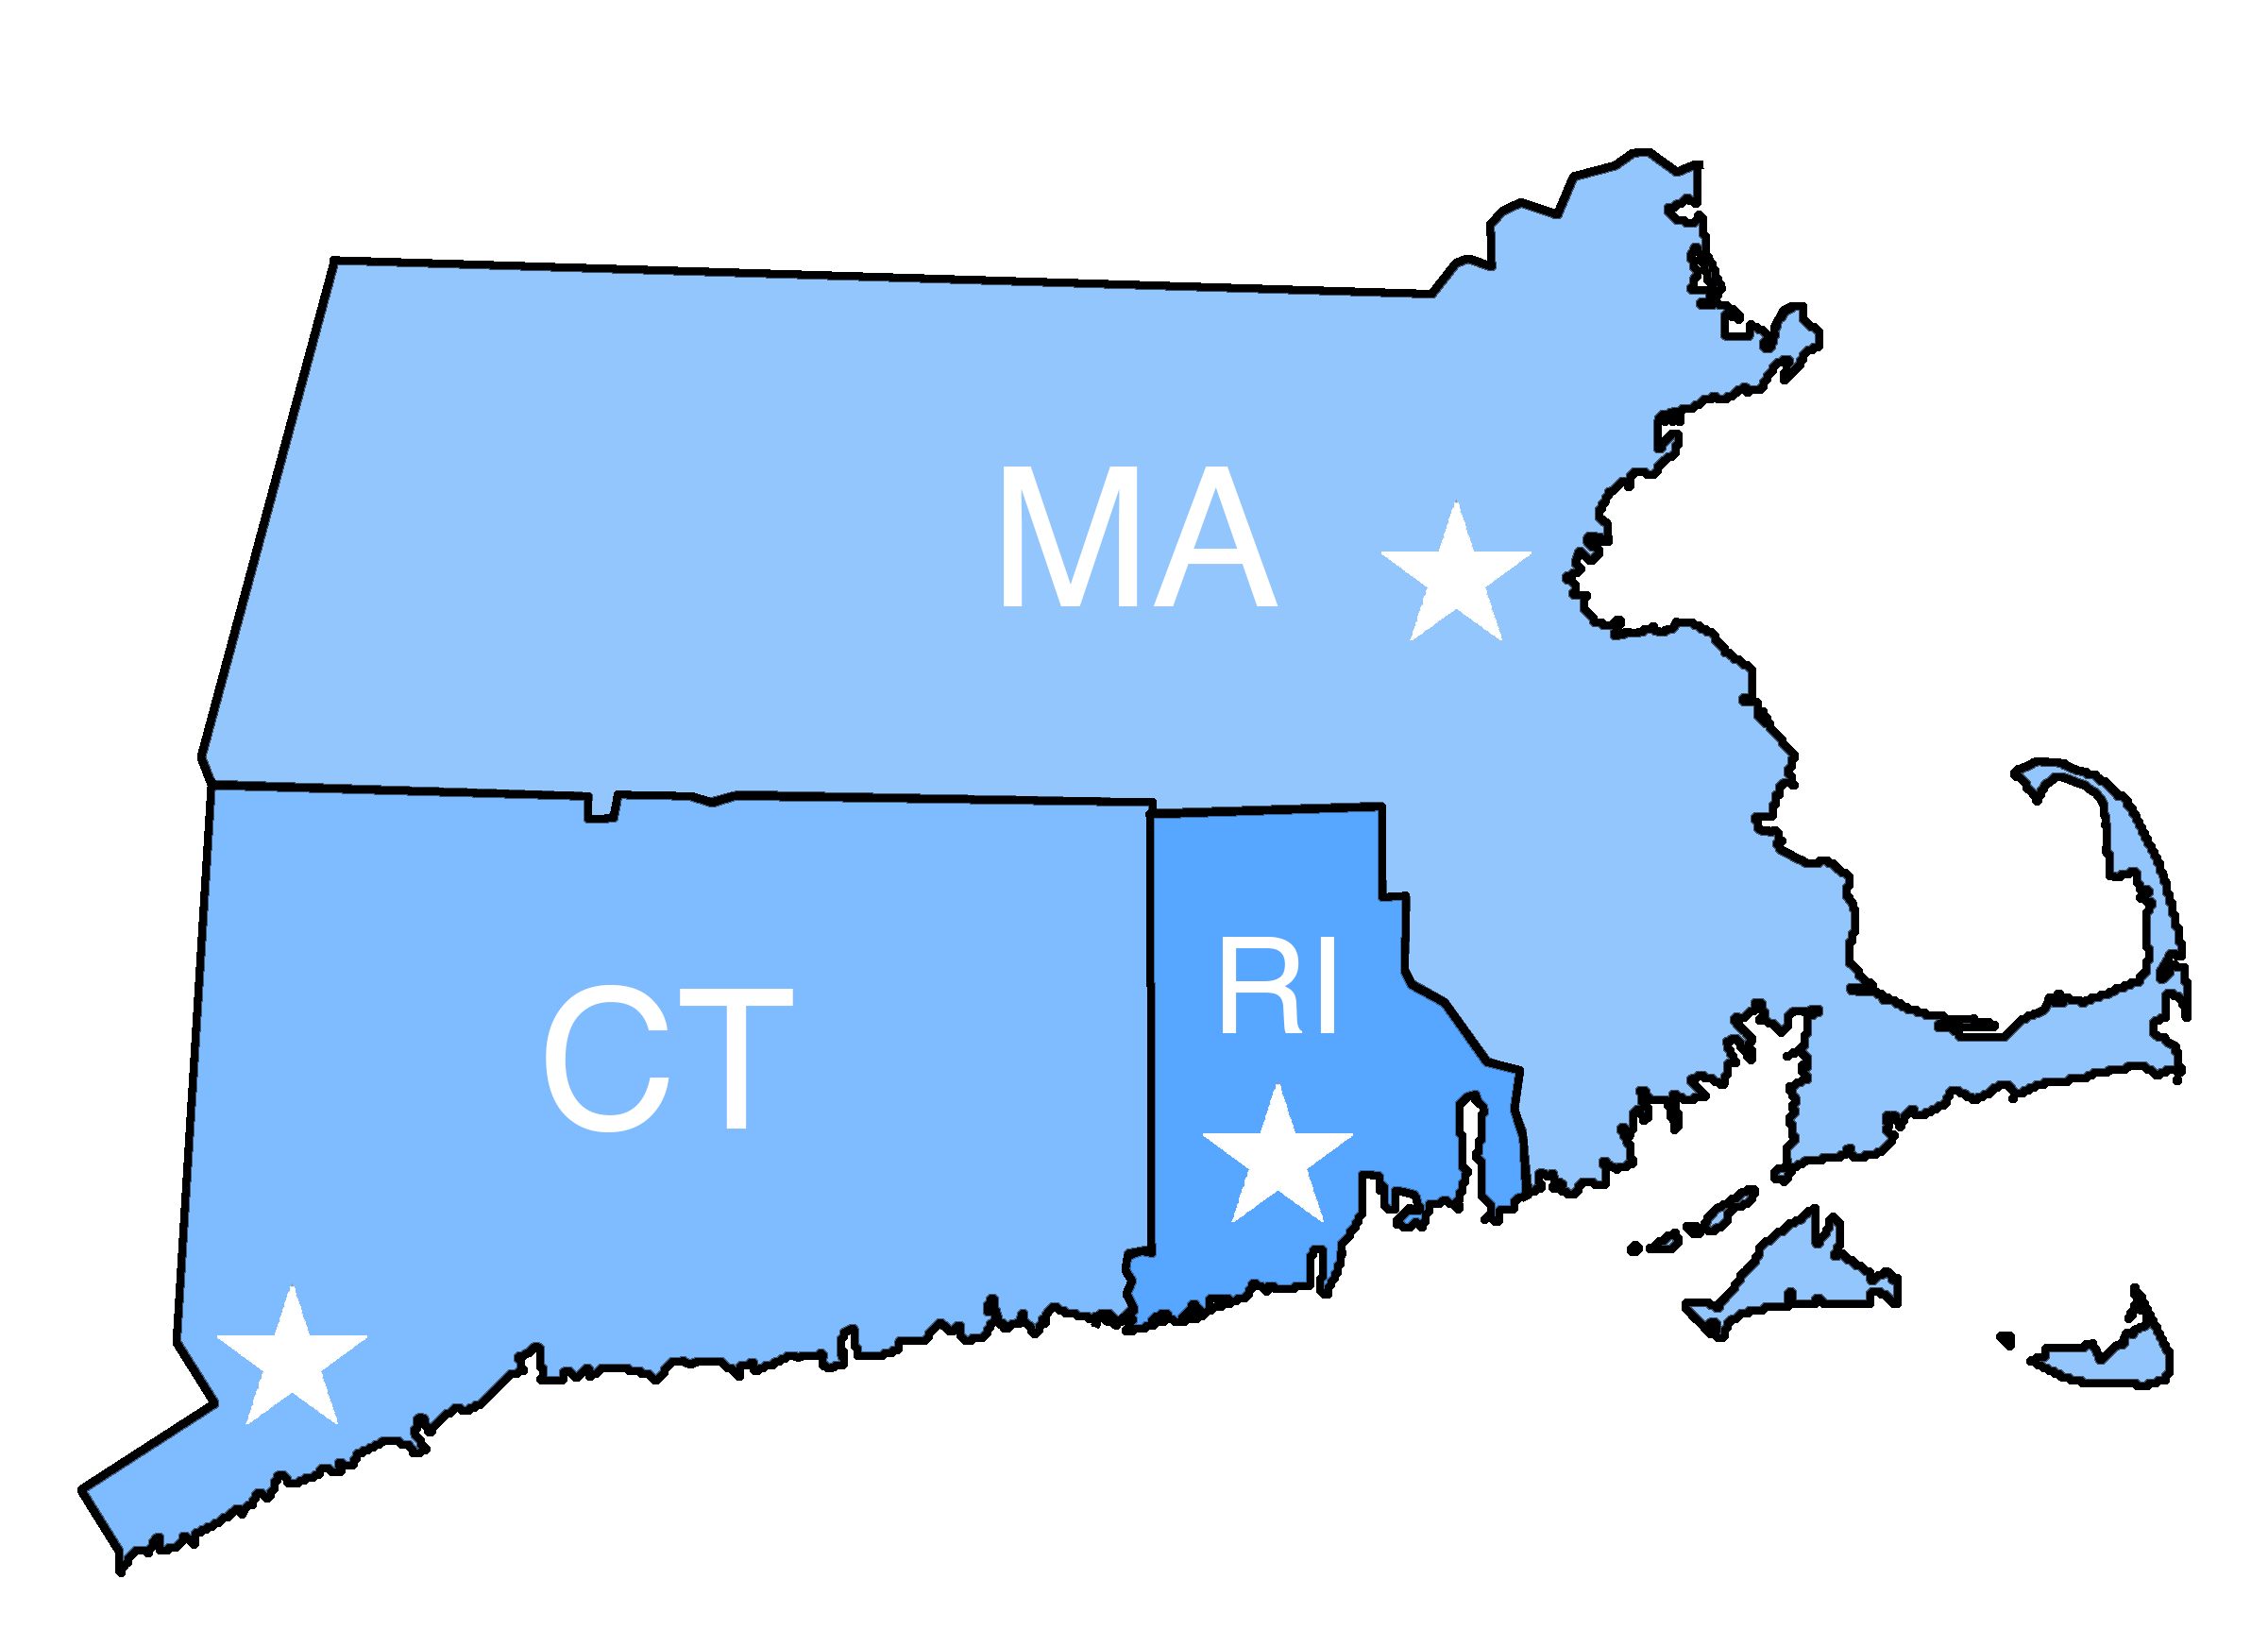 Map of Connecticut, Massachusetts, and Rhode Island.